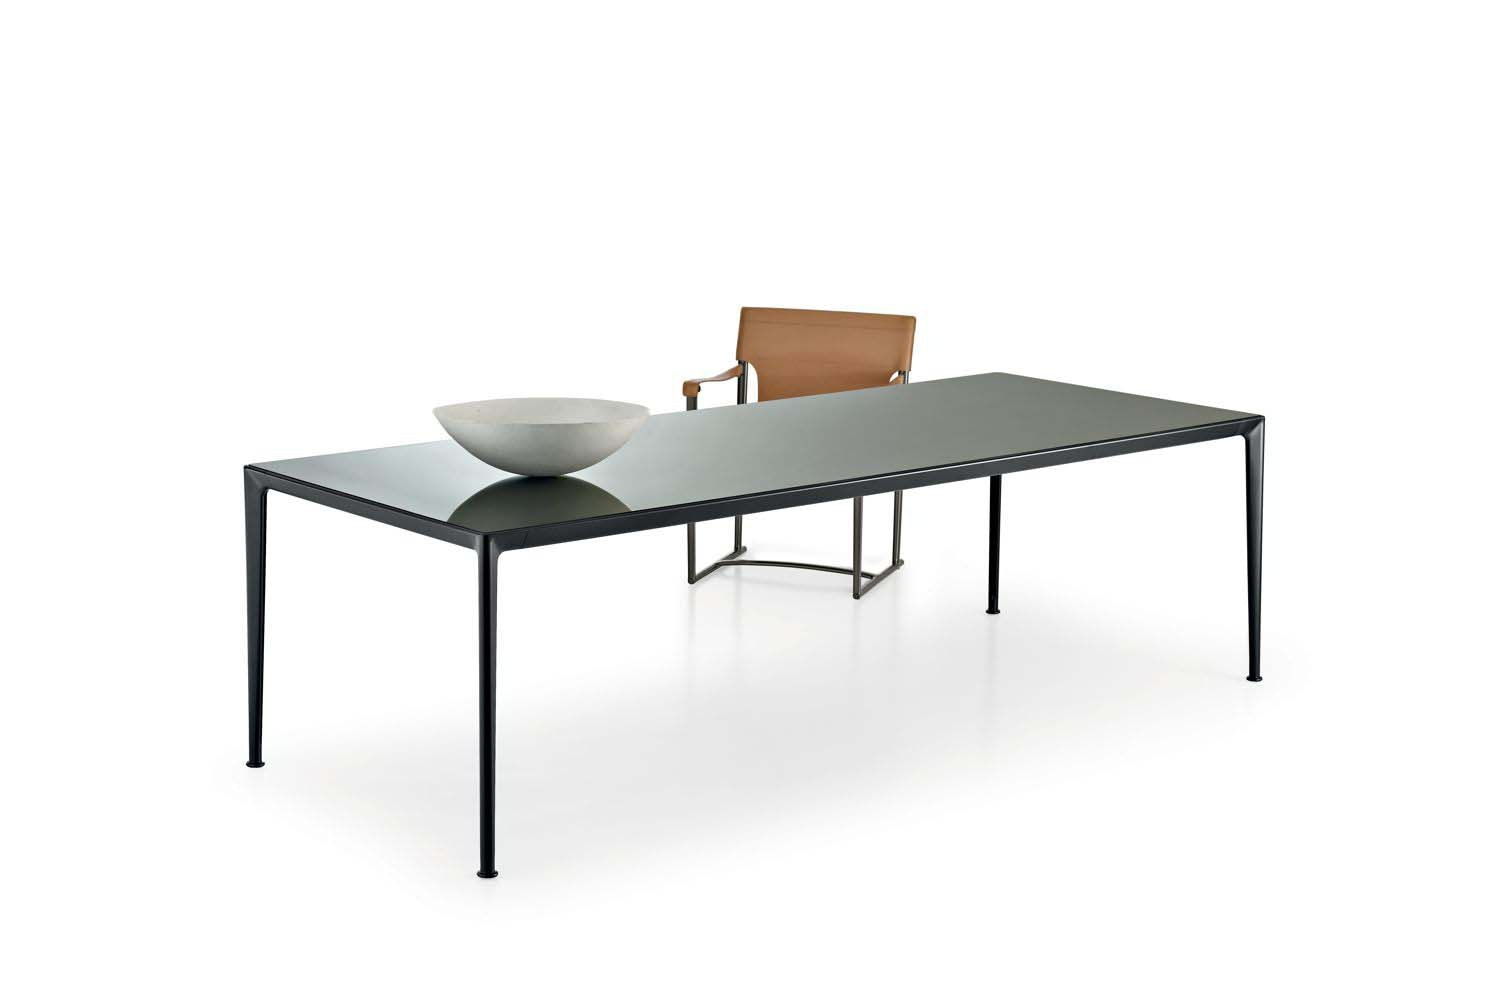 Mirto Indoor Table by Antonio Citterio for B&B Italia